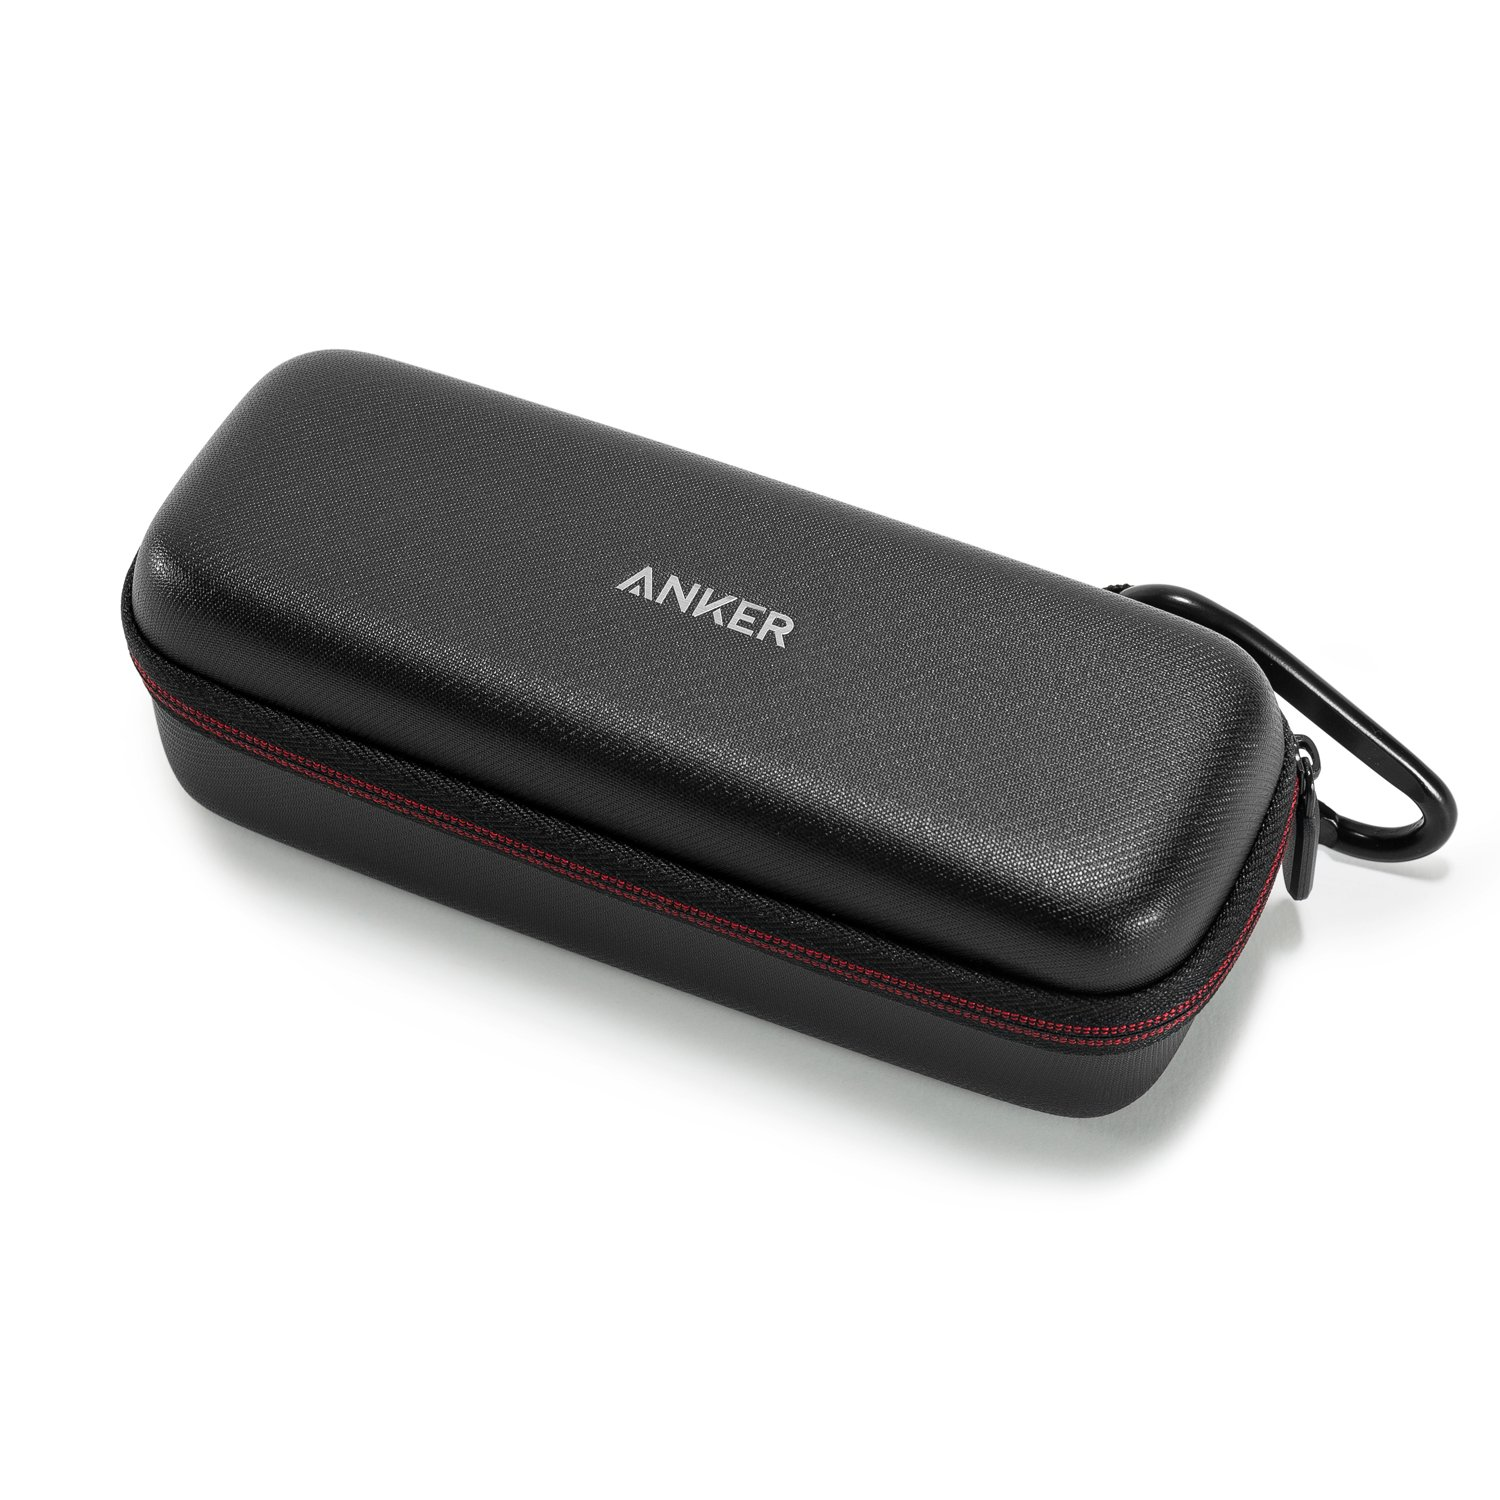 Anker SoundCore Official Travel Case (Anker SoundCore/SoundCore 2 /Motion B Bluetooth Speaker ONLY) - PU Leather Premium Protection Carry Case